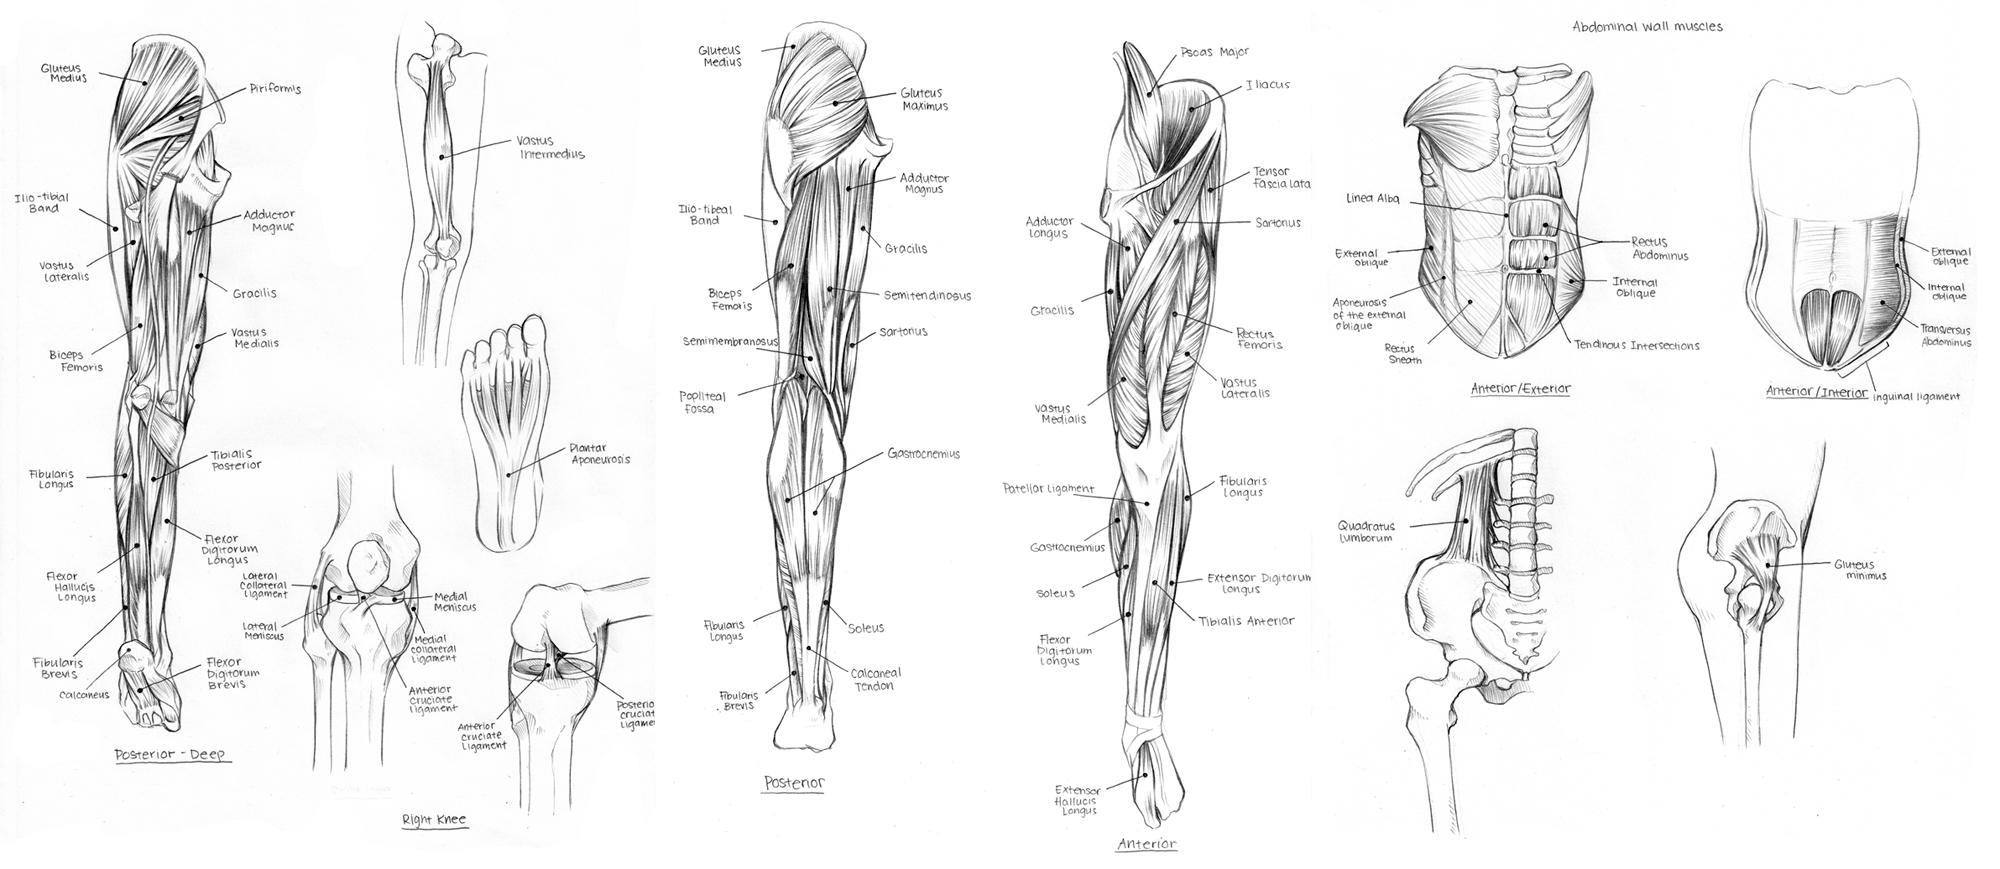 Lower body muscles and tendons by cartoongirl7 on deviantart lower body muscles and tendons by cartoongirl7 ccuart Images